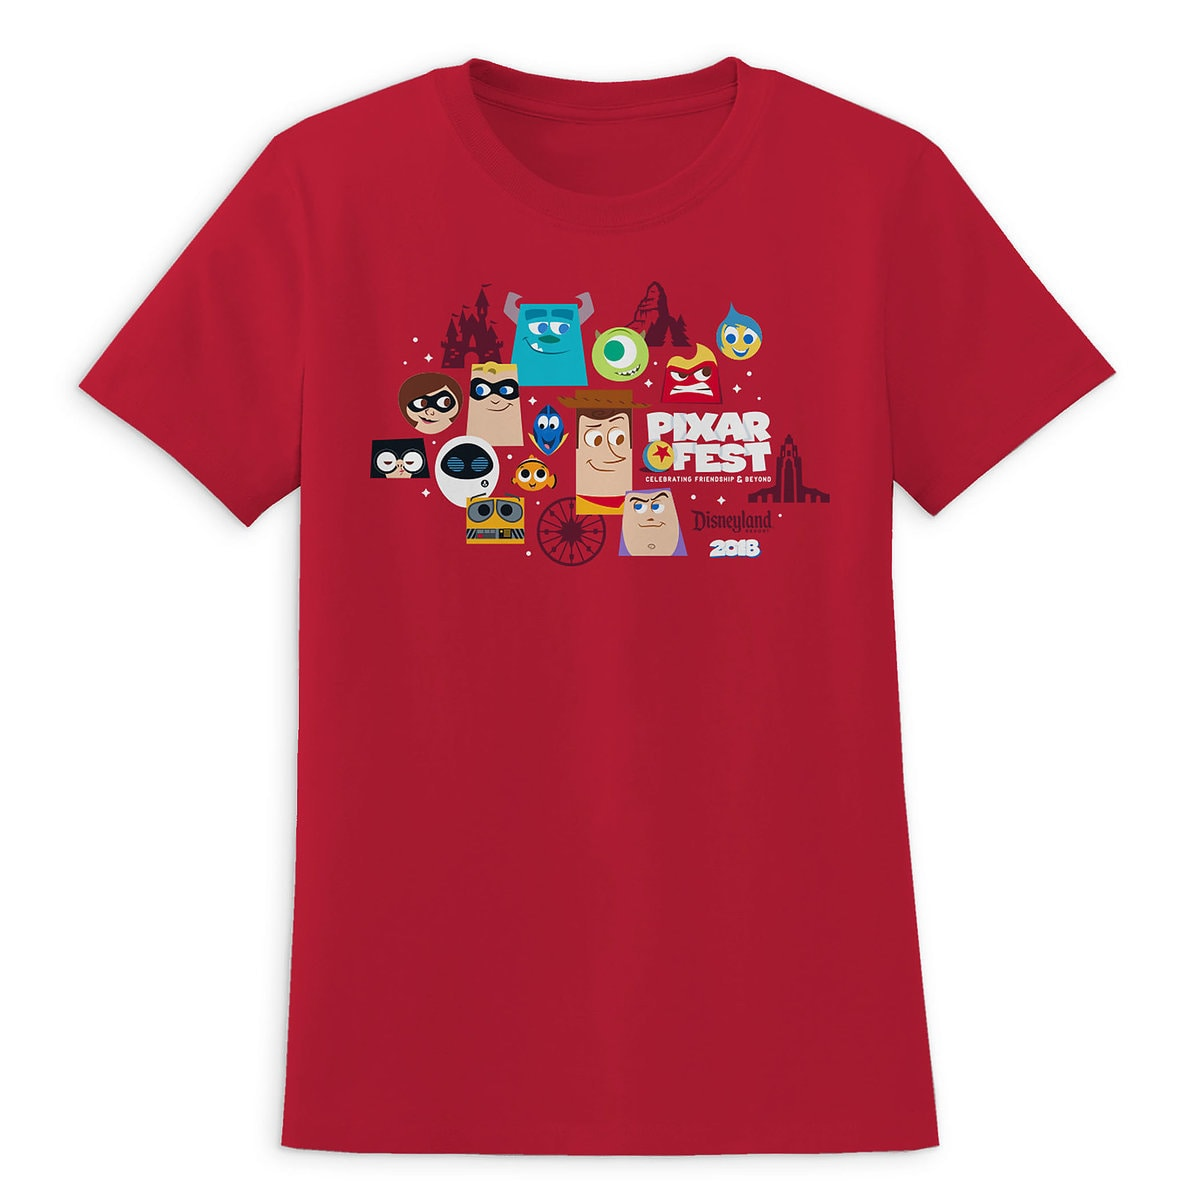 Product Image of PIXAR Fest 2018 T-Shirt for Women - Disneyland - Limited Release # 1